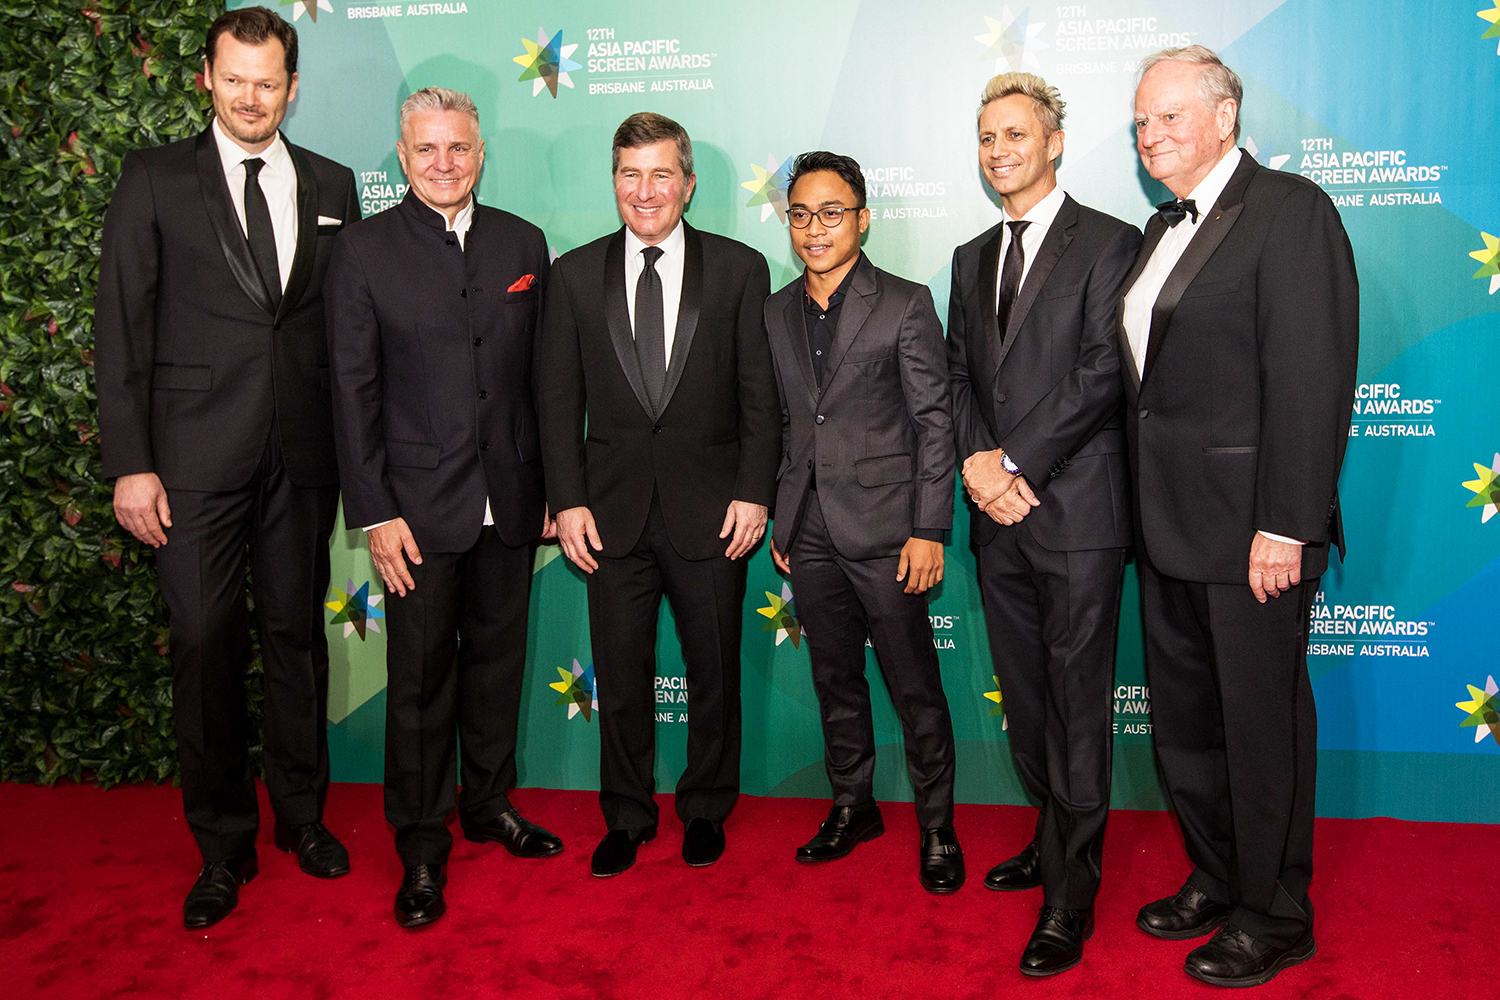 Suited up men on the Red Carpet for the Asia Pacific Screen Awards held in Brisbane